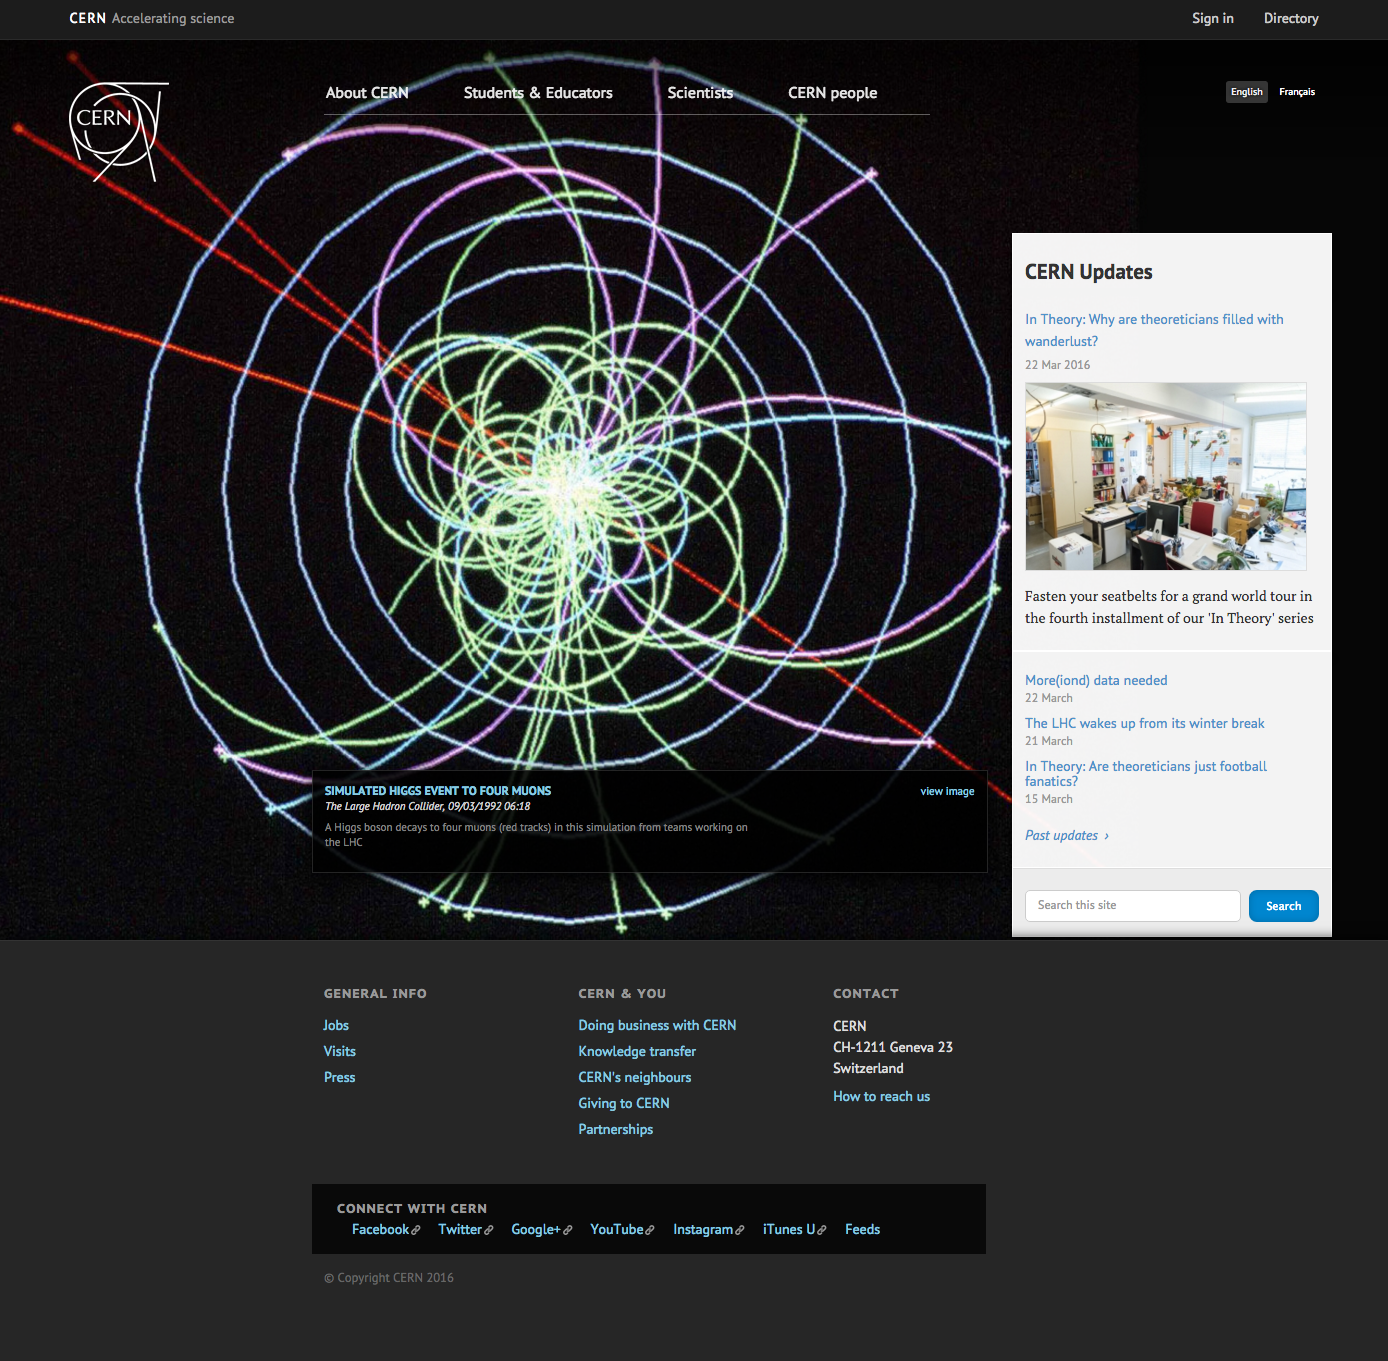 screenshot-cern-website-first-website-ever-made.png